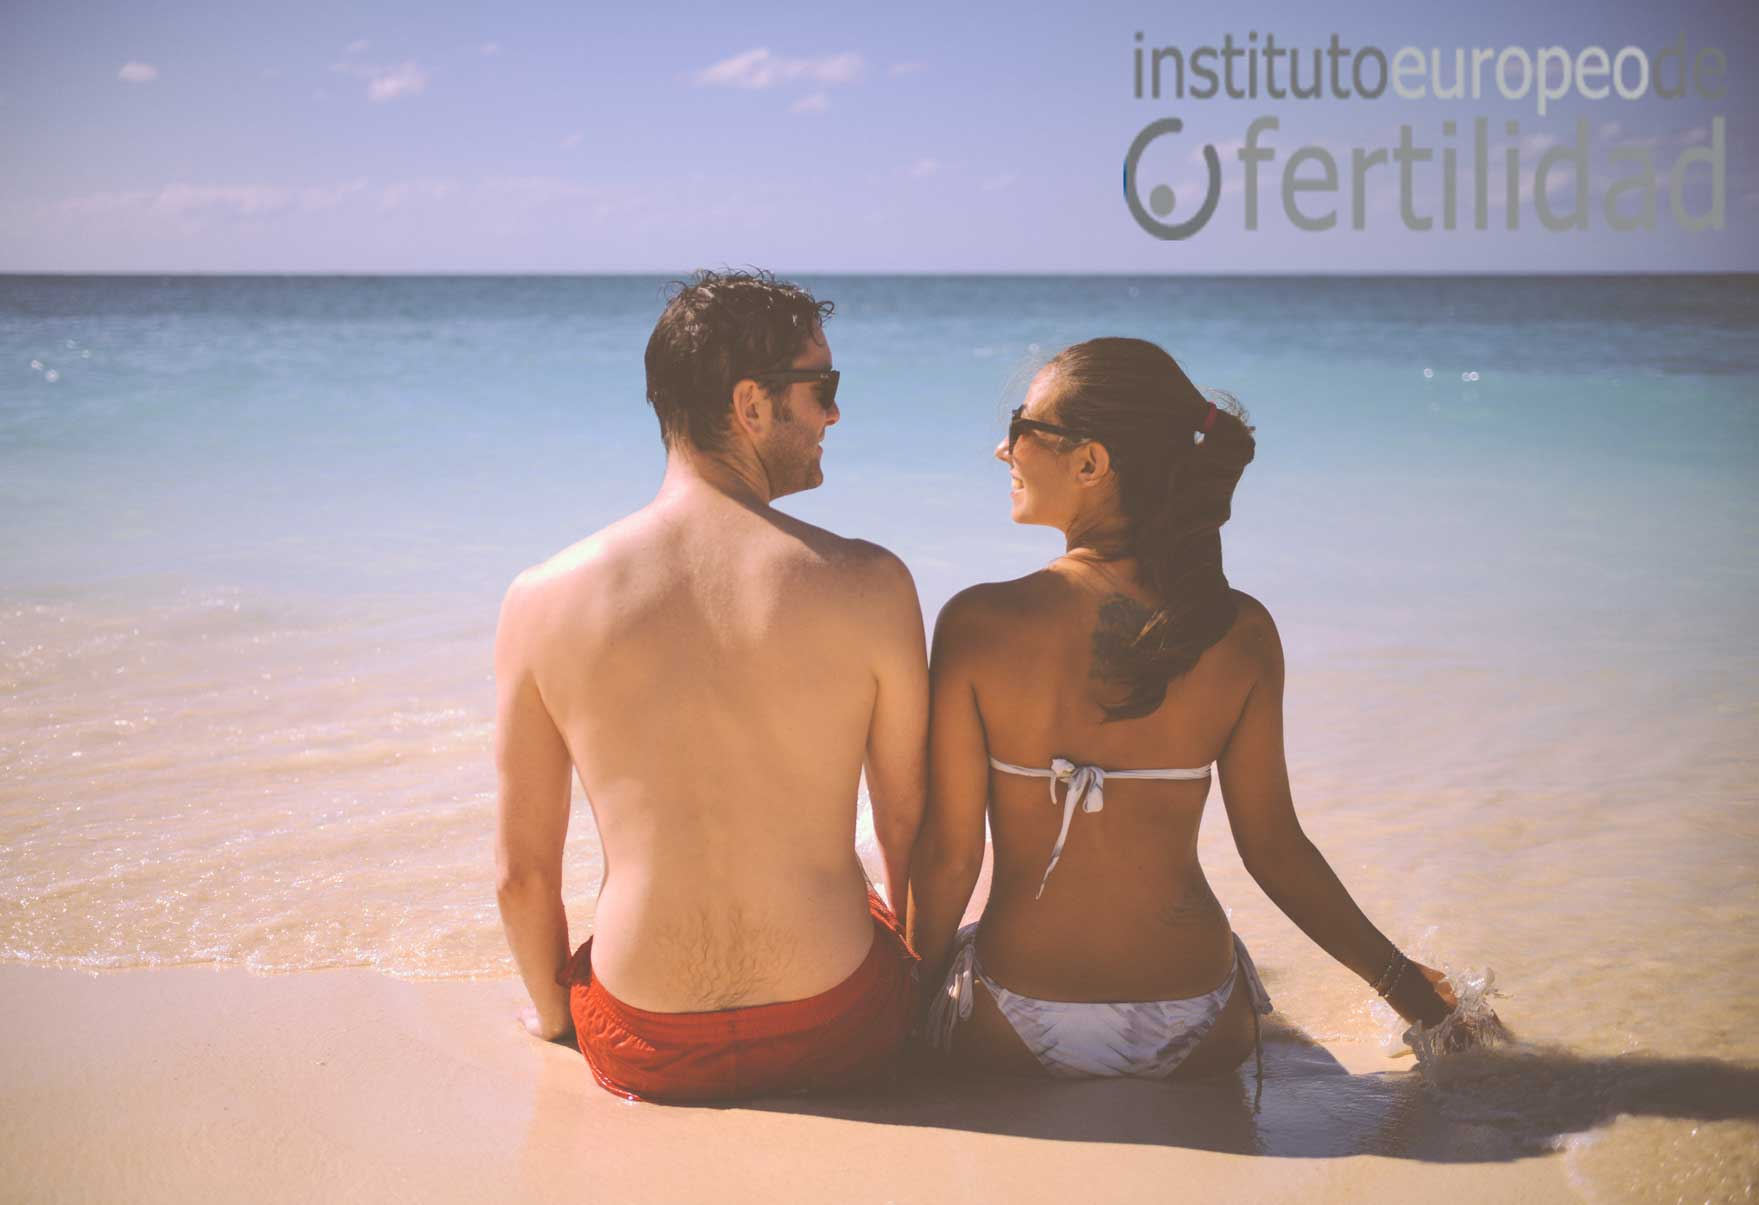 instituto-europeo-de-fertilidad-pareja-playa-retraso-embarazo.jpg